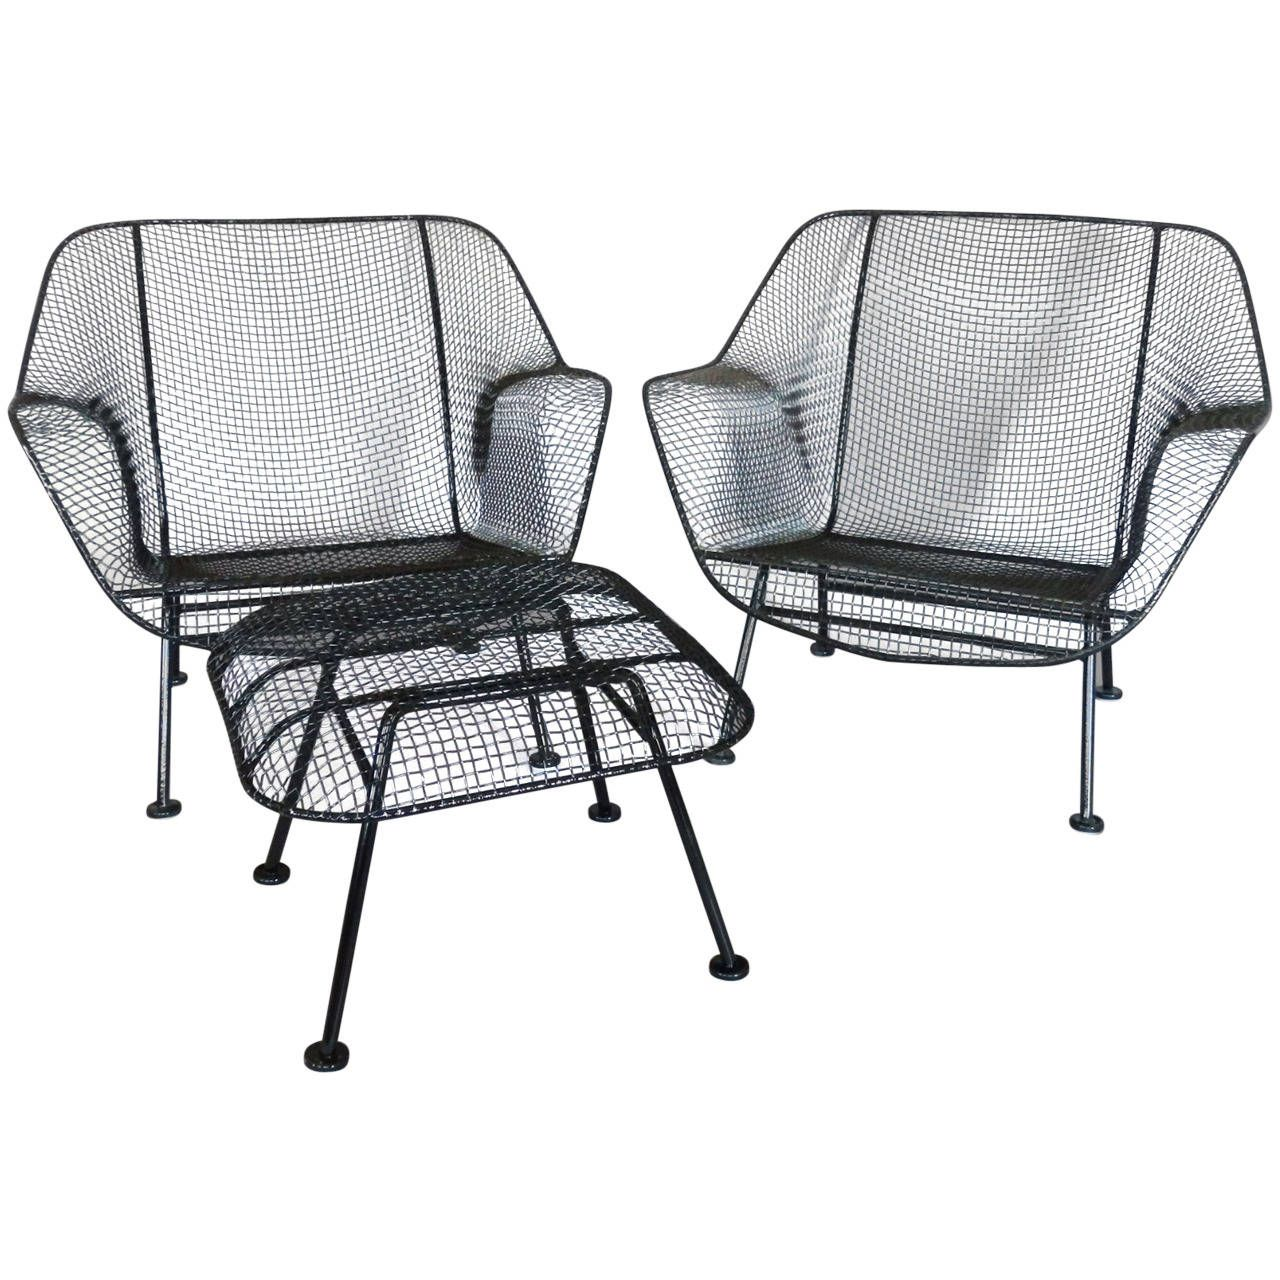 pair of woodard wrought iron with mesh lounge chairs   lounge